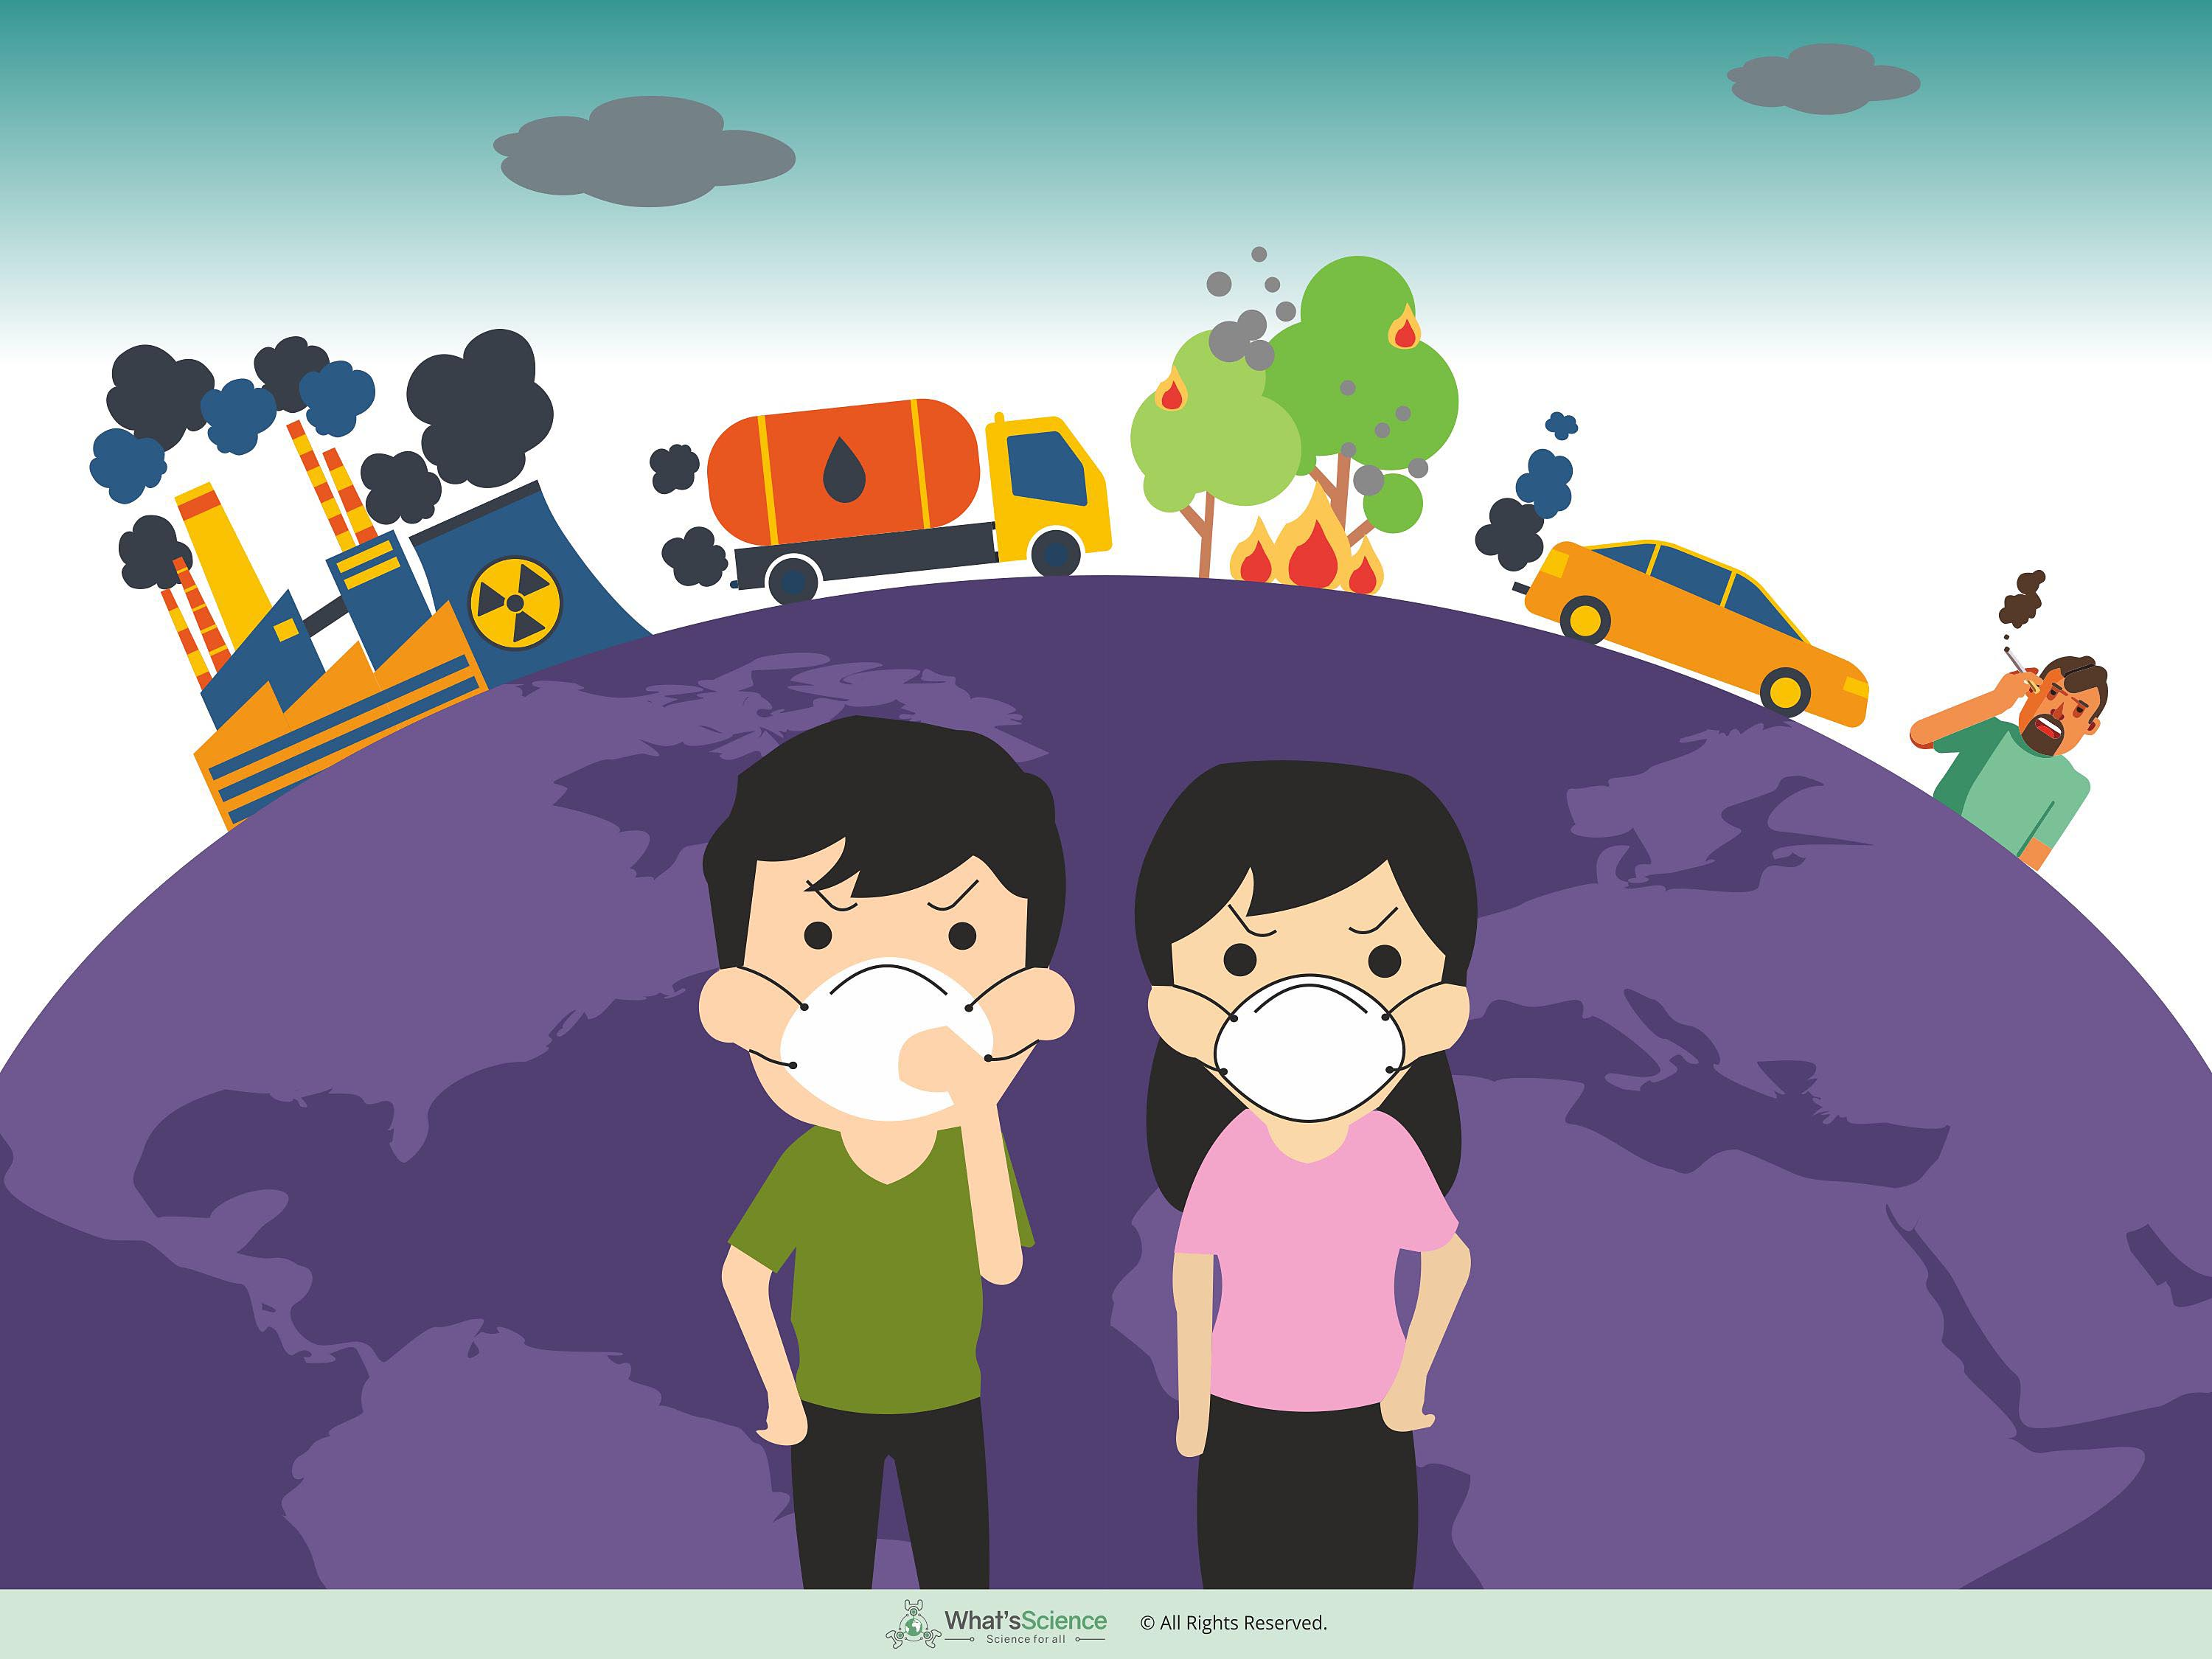 Climate change and pollution affects health